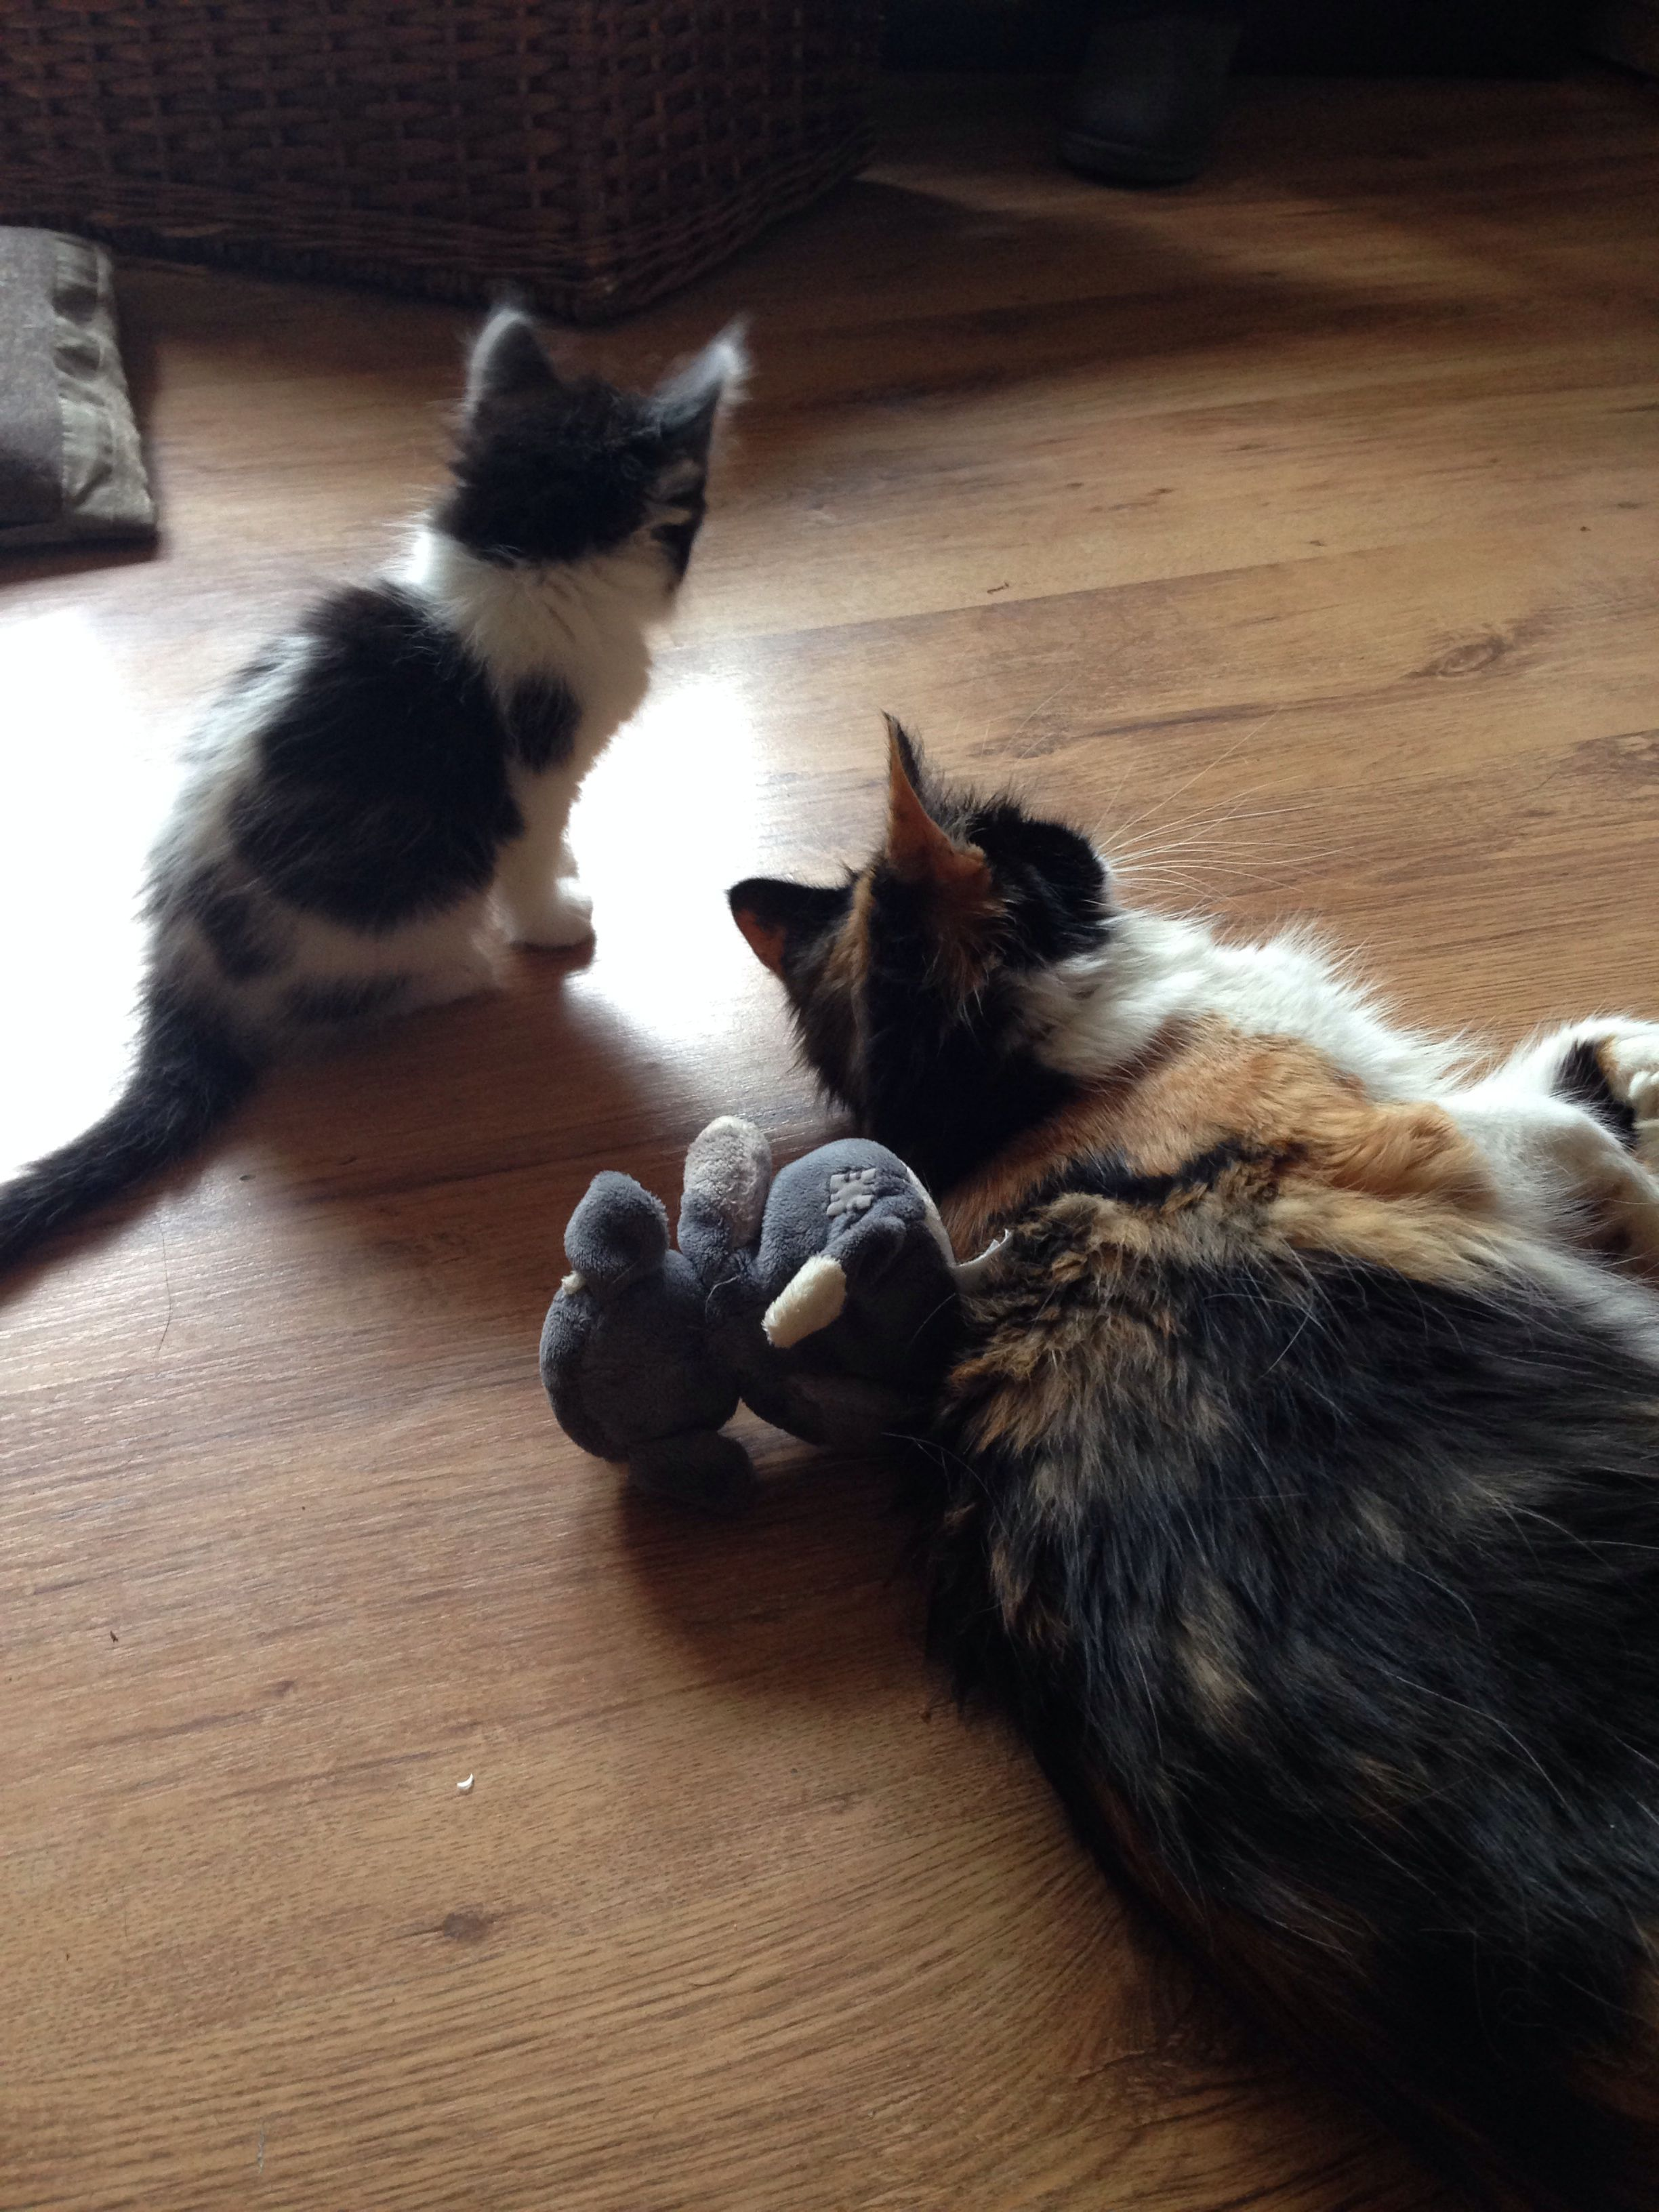 Our Norwegian Forest Cat Kitten Frankie 8 Weeks Sharing A Few Moments With His Mum Phoebe Norwegian Forest Cat Cats And Kittens Cat Photo